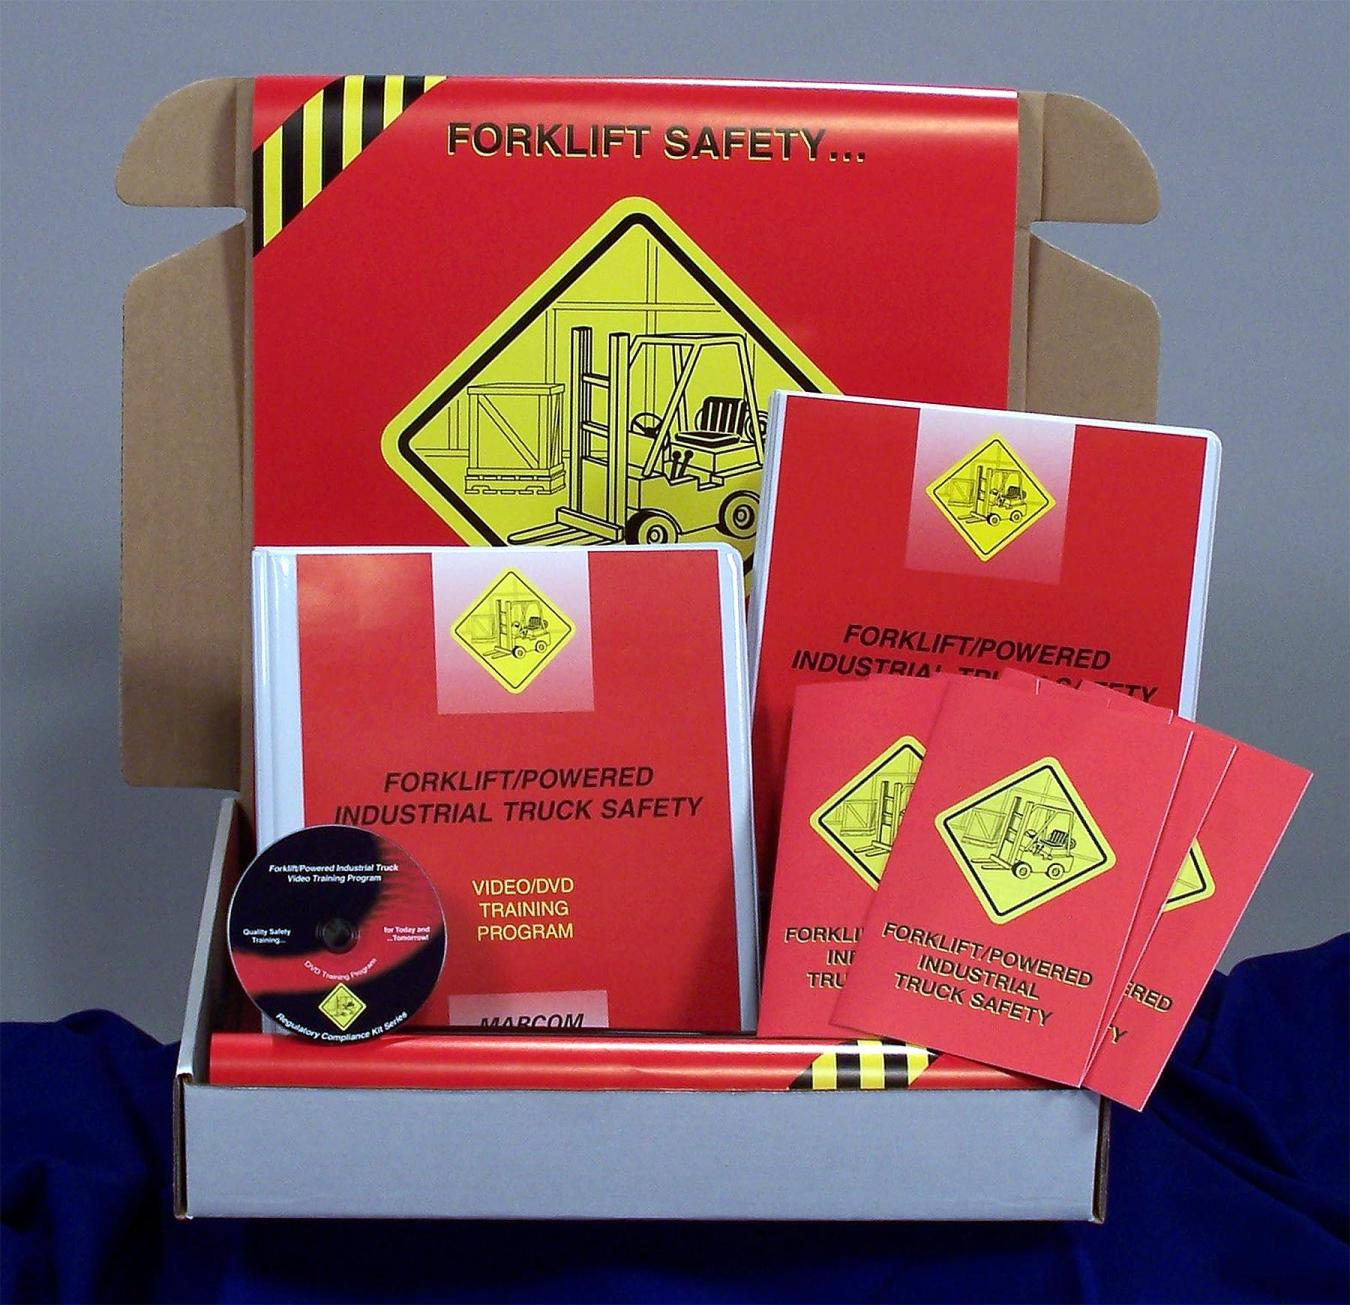 Forklift/Powered Industrial Truck Safety Regulatory Compliance Kit - Marcom - DVD